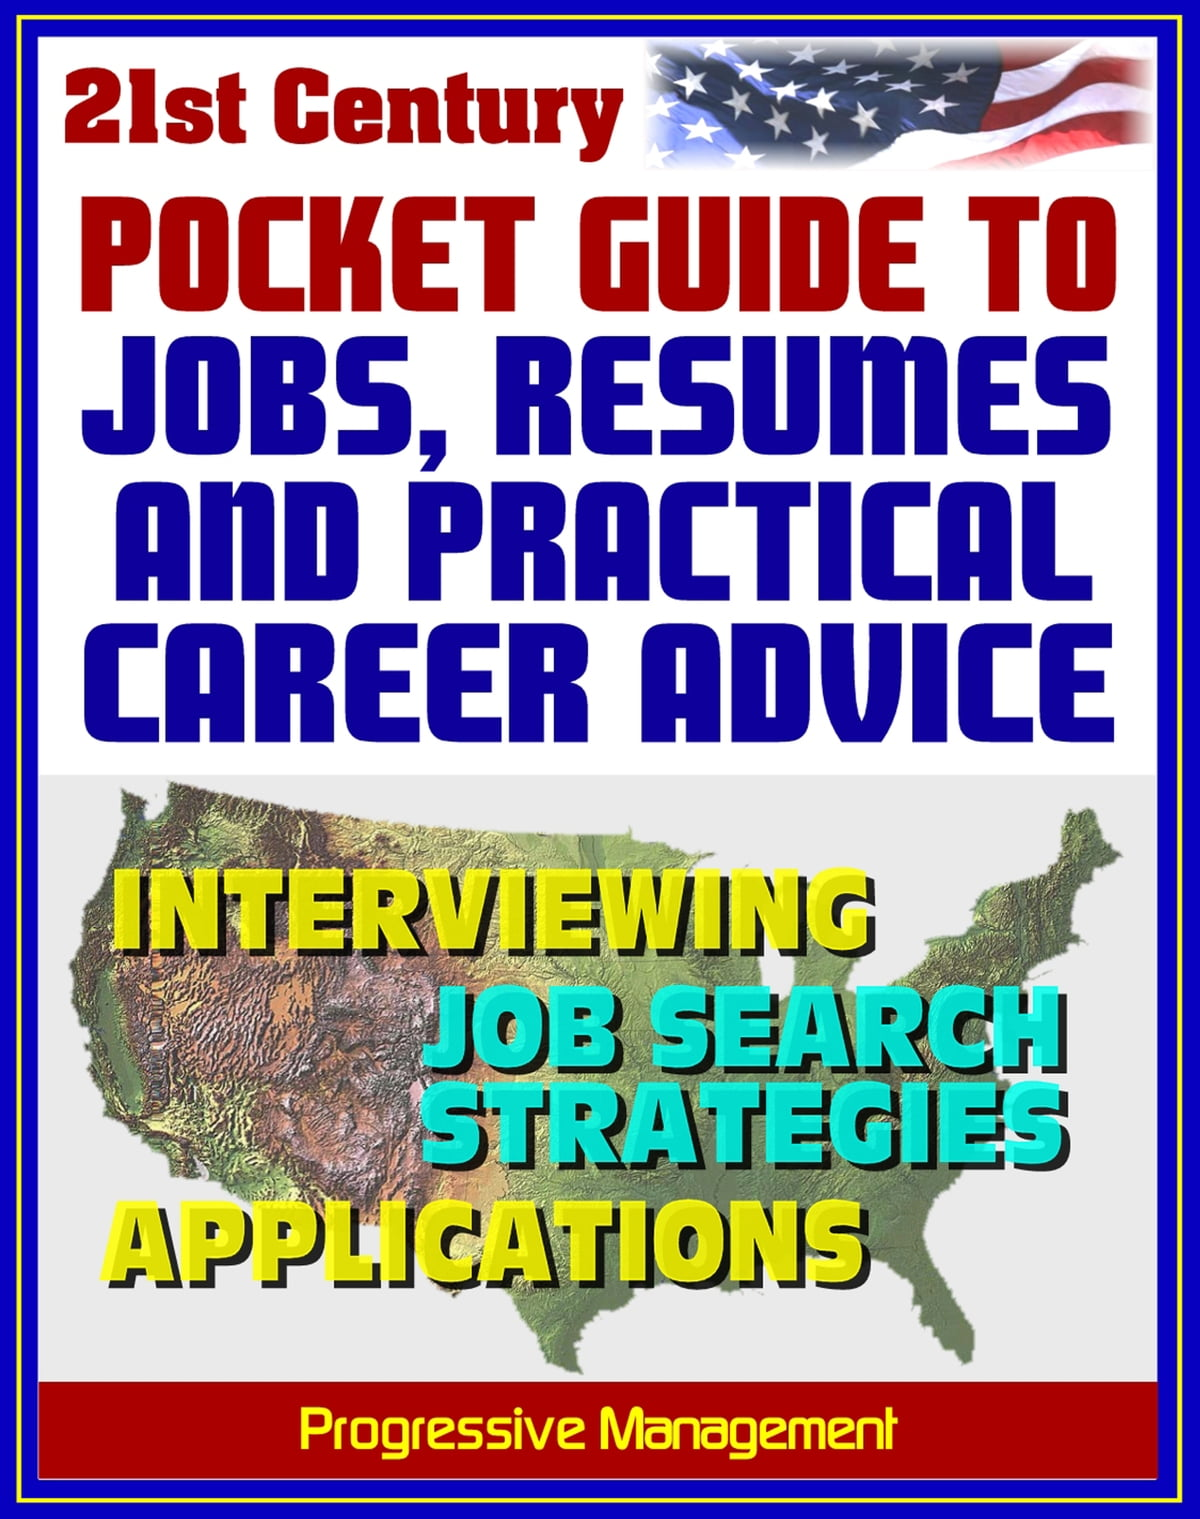 21st Century Pocket Guide To Jobs Resumes And Practical Career Advice Interviewing Applications Federal Jobs Job Search Techniques Cover